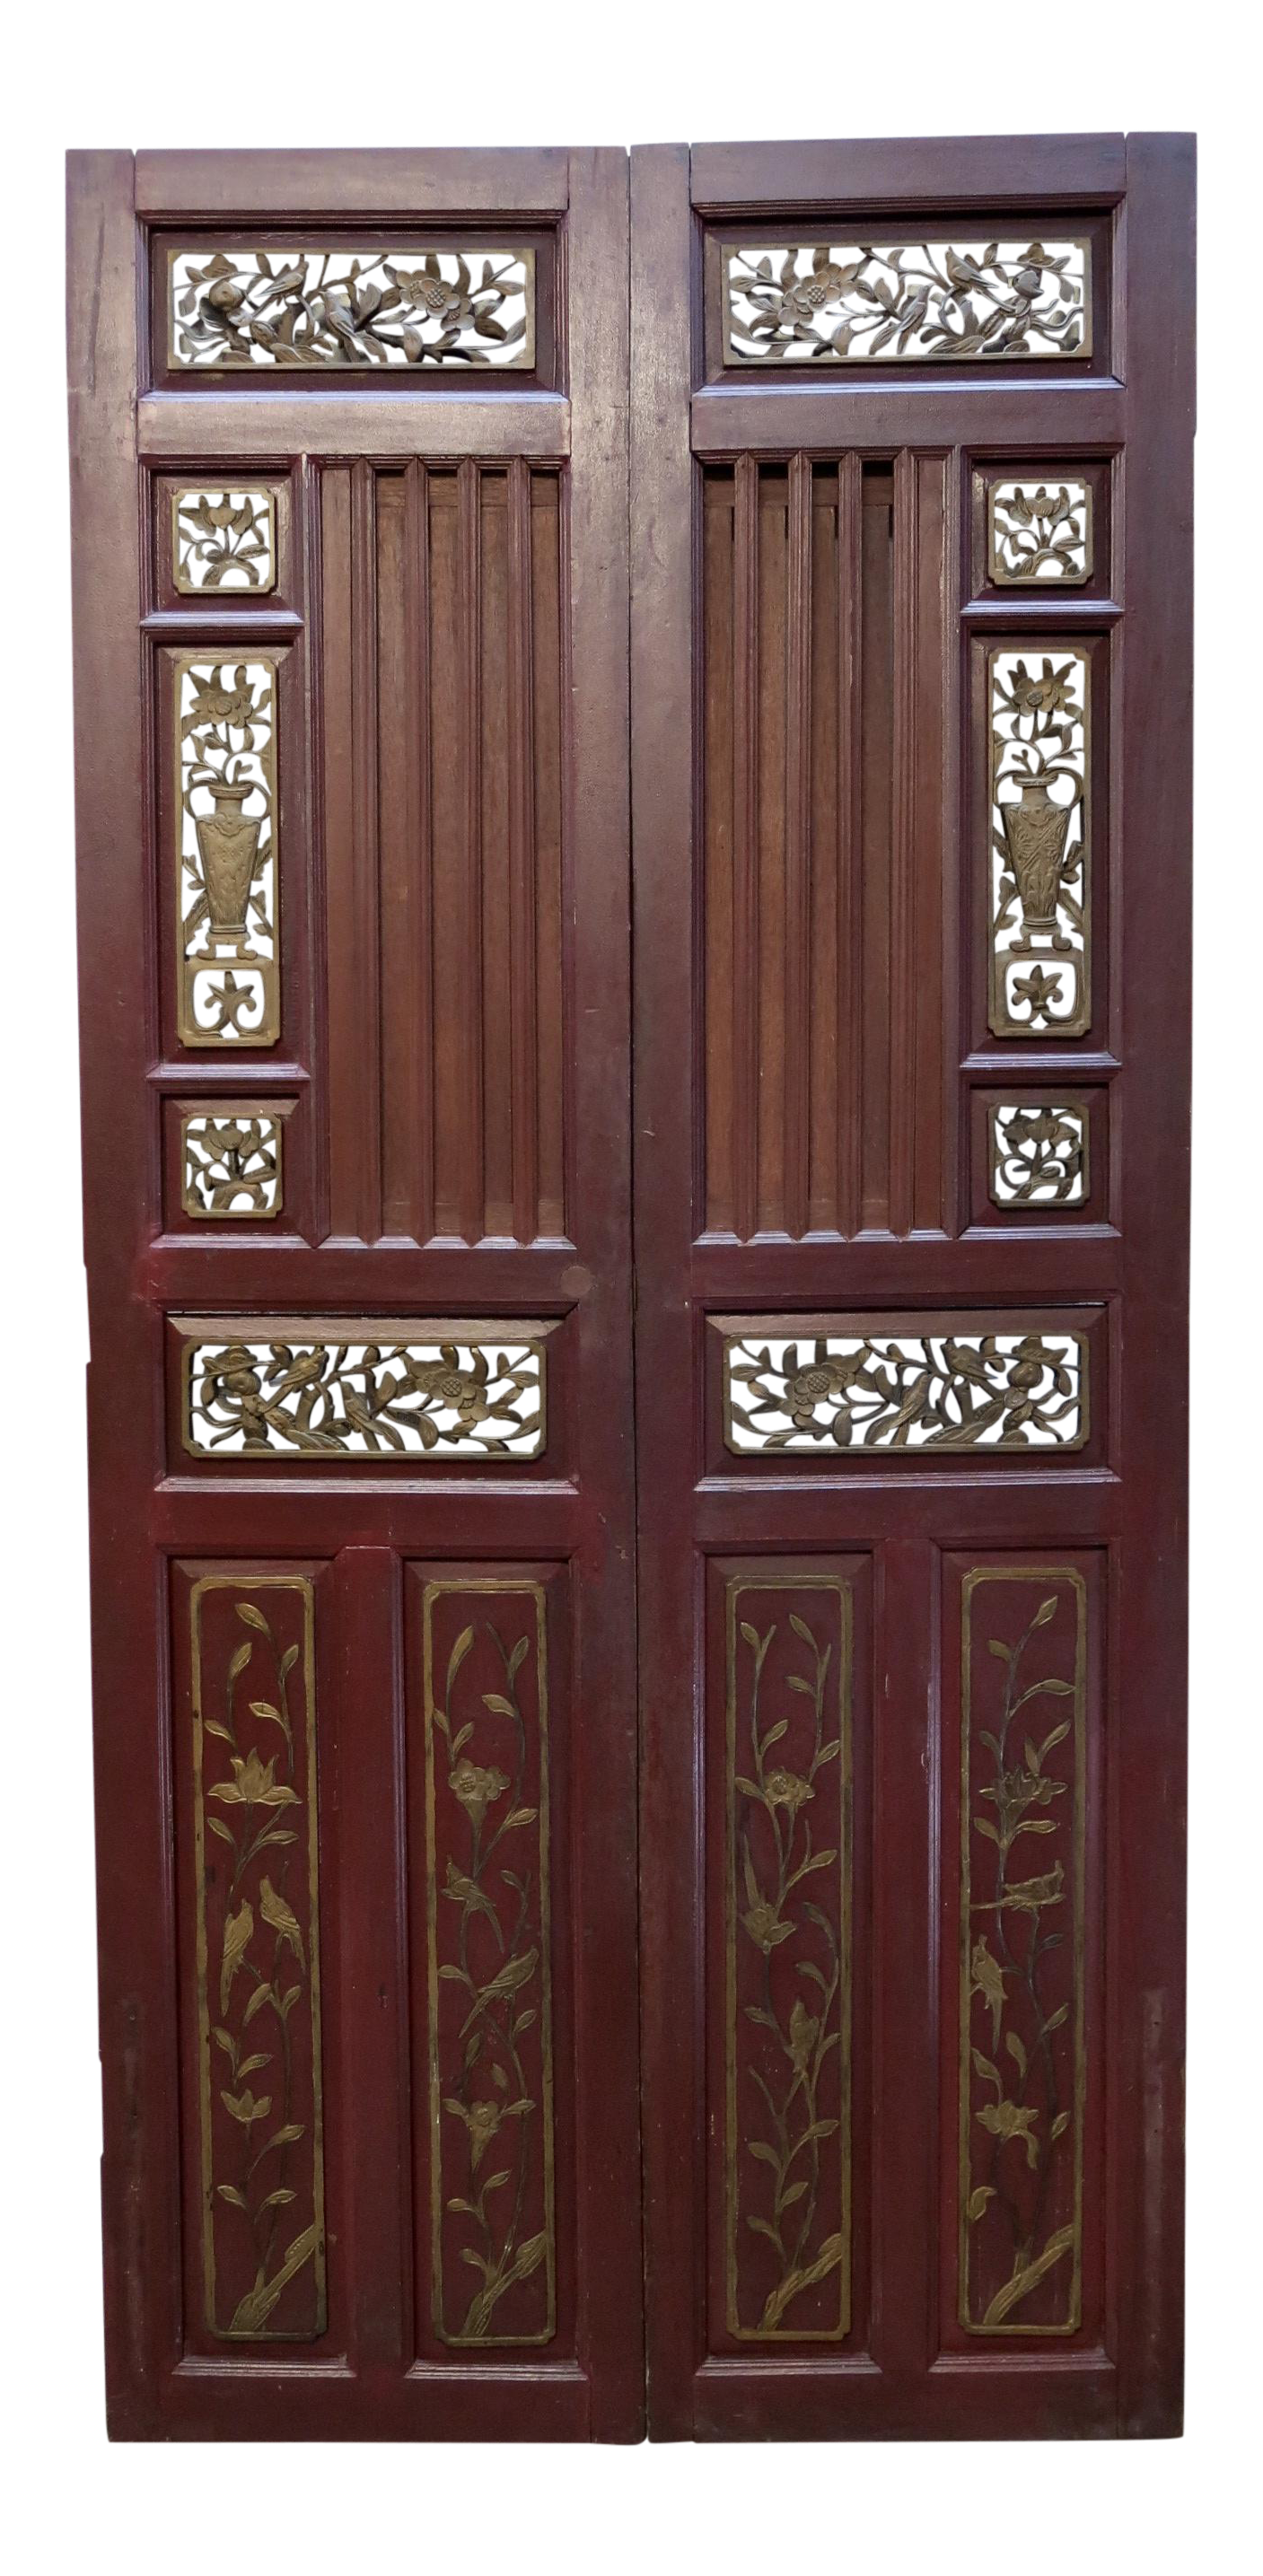 Antique Chinese Hand Carved Wooden Doors - a Pair - Antique Chinese Hand Carved Wooden Doors - A Pair Hand Carved